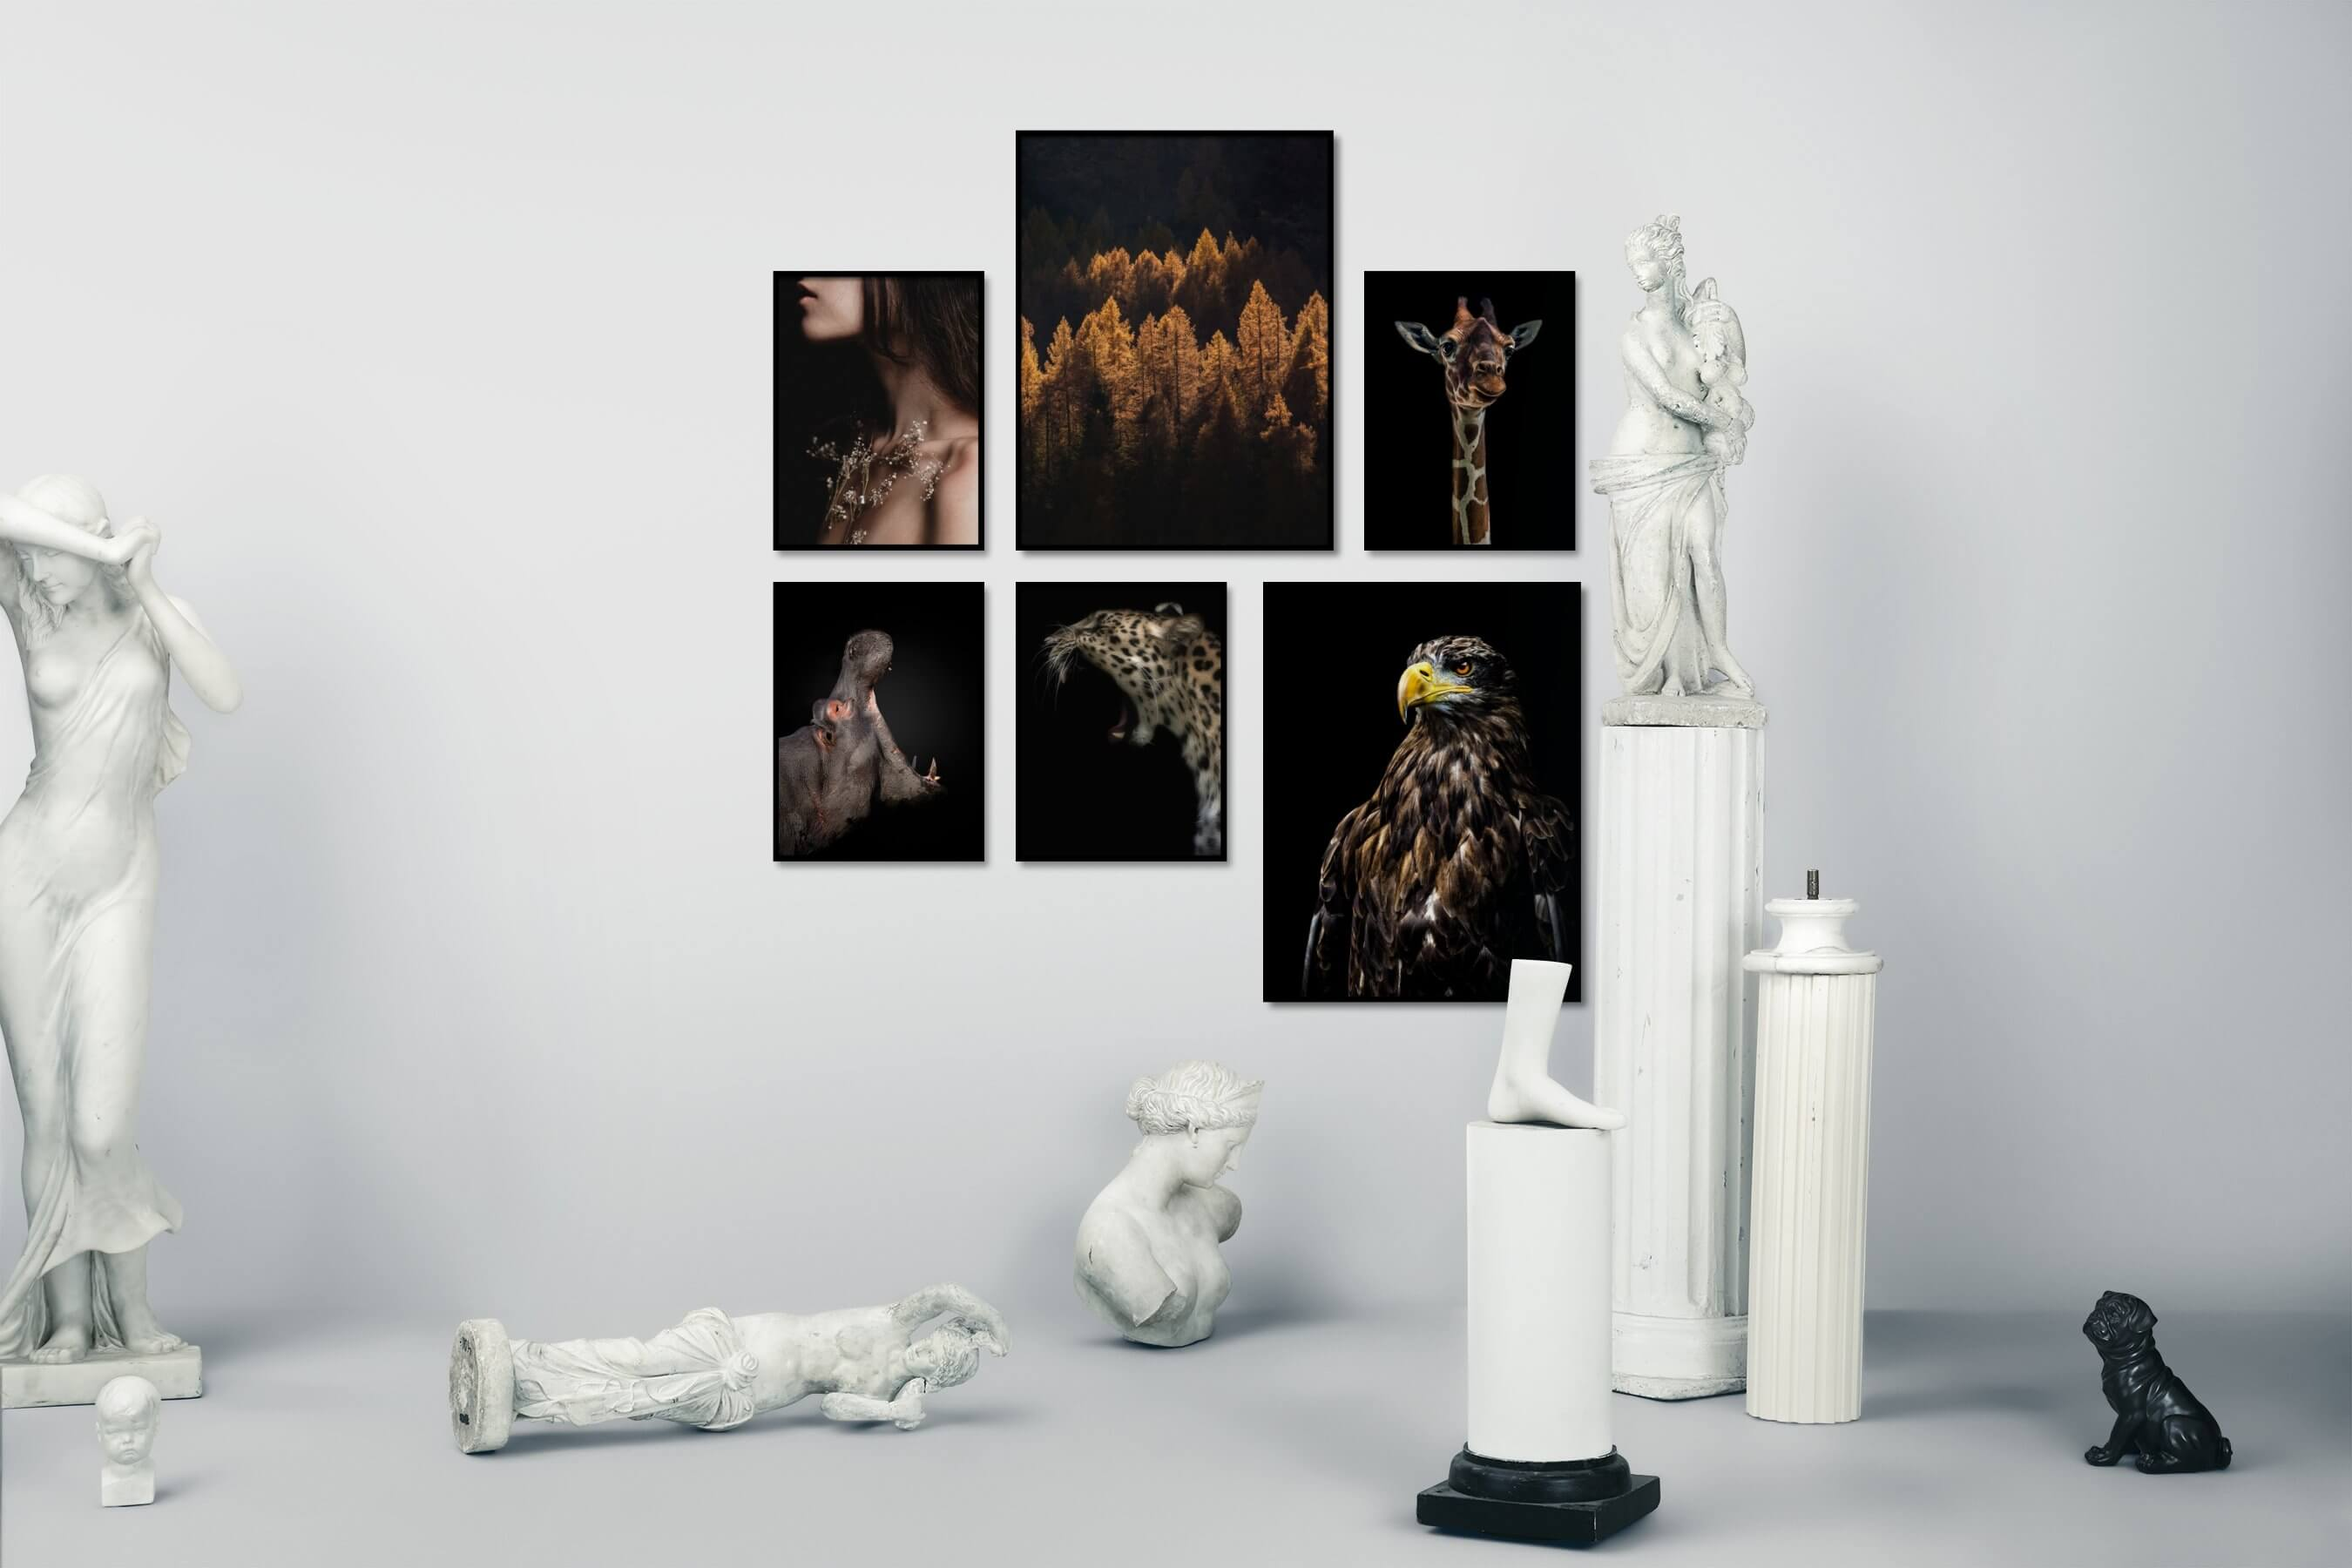 Gallery wall idea with six framed pictures arranged on a wall depicting Fashion & Beauty, For the Moderate, Nature, Mindfulness, Dark Tones, Animals, and For the Minimalist